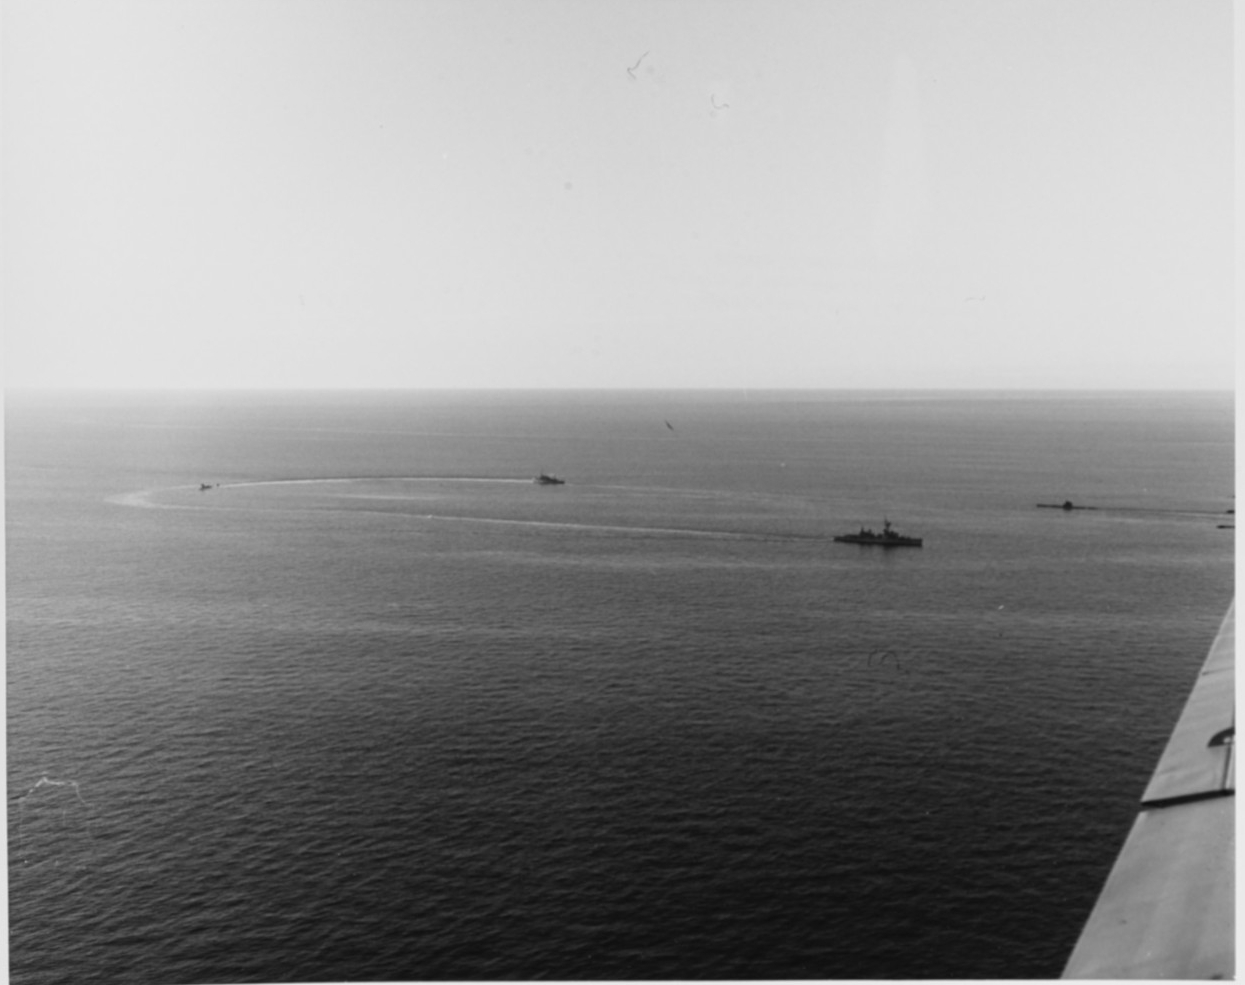 Photo #: NH 97555  Loss of USS Thresher (SSN-593), April 1963